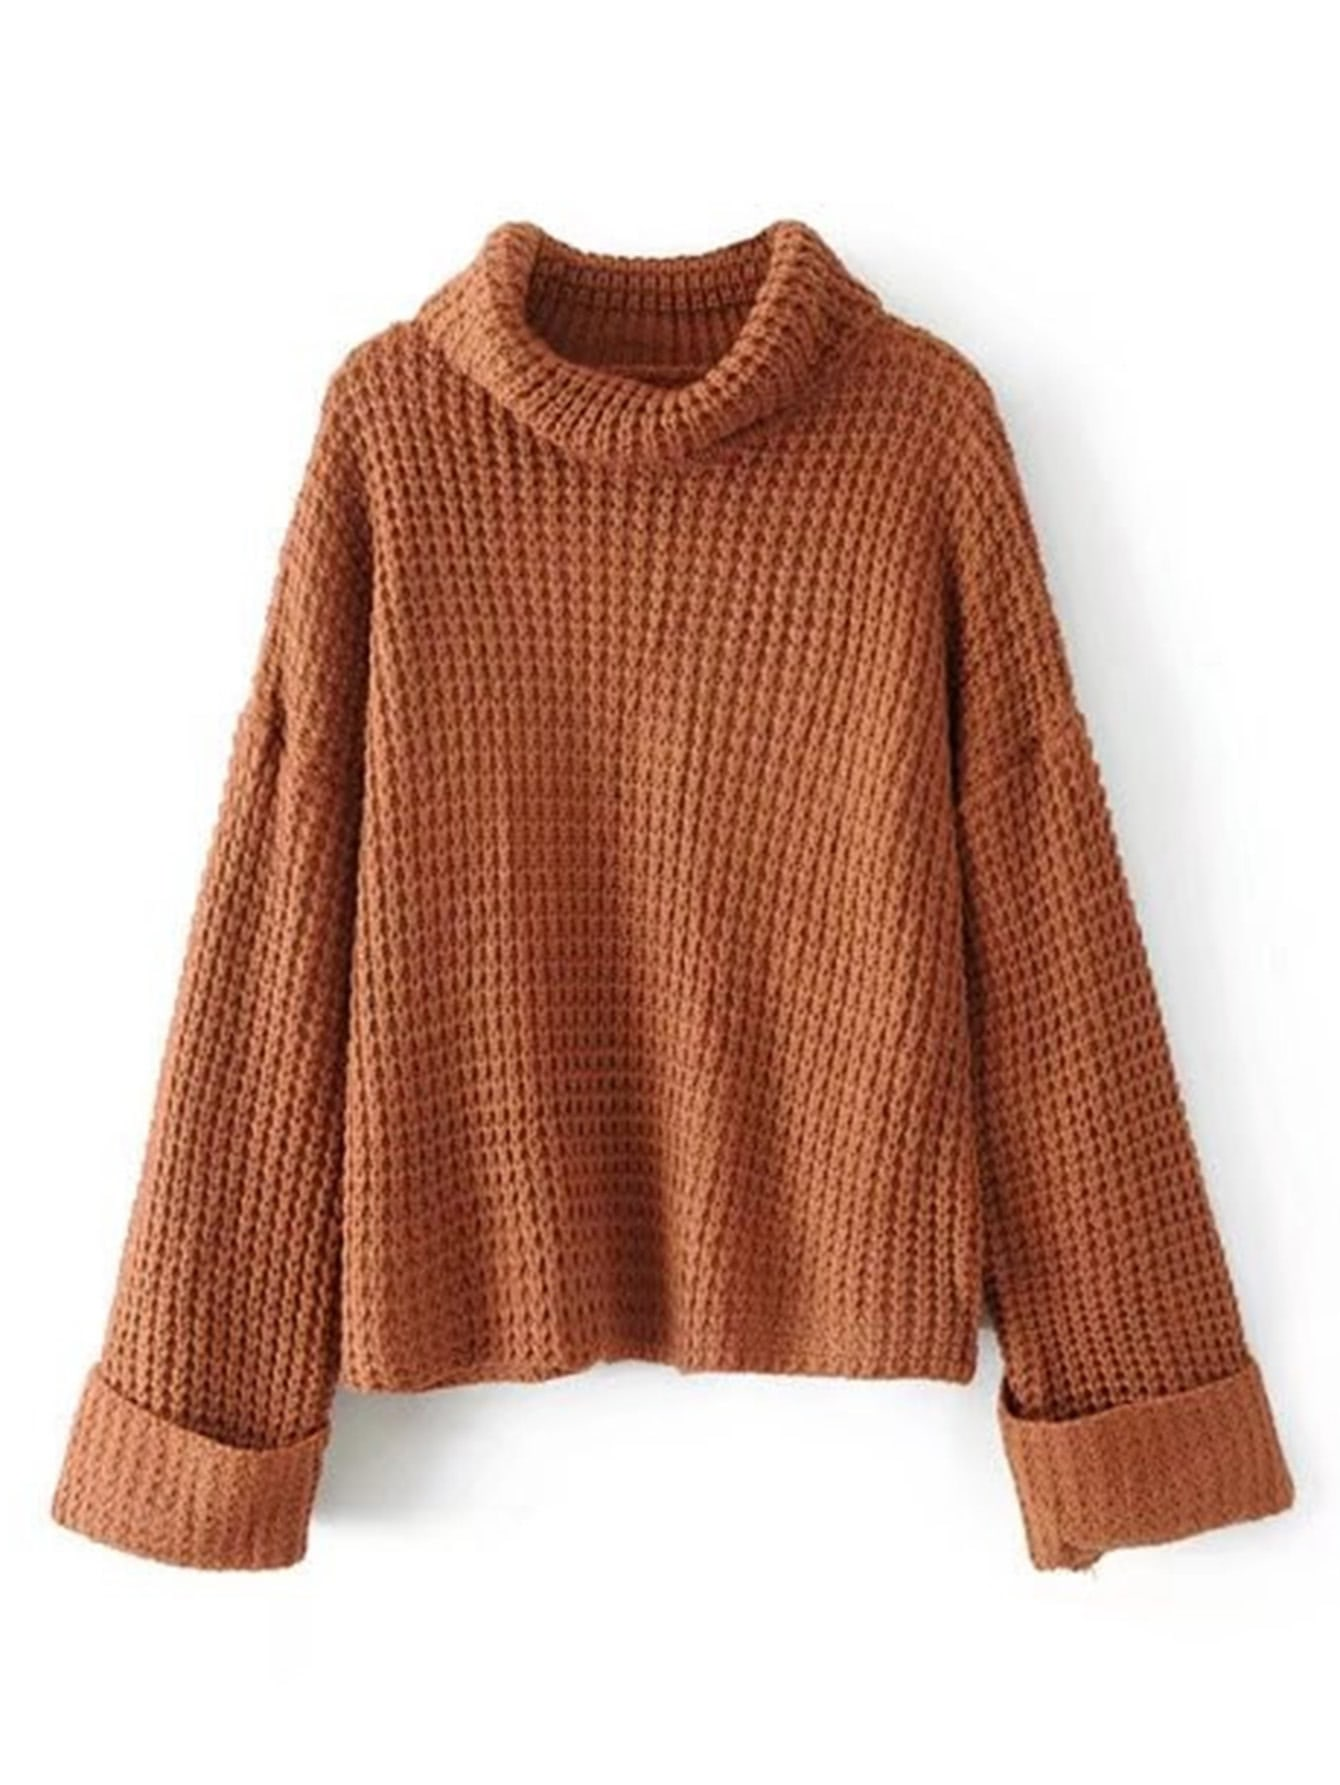 Turtleneck Waffle Knit Sweater -SheIn(Sheinside)